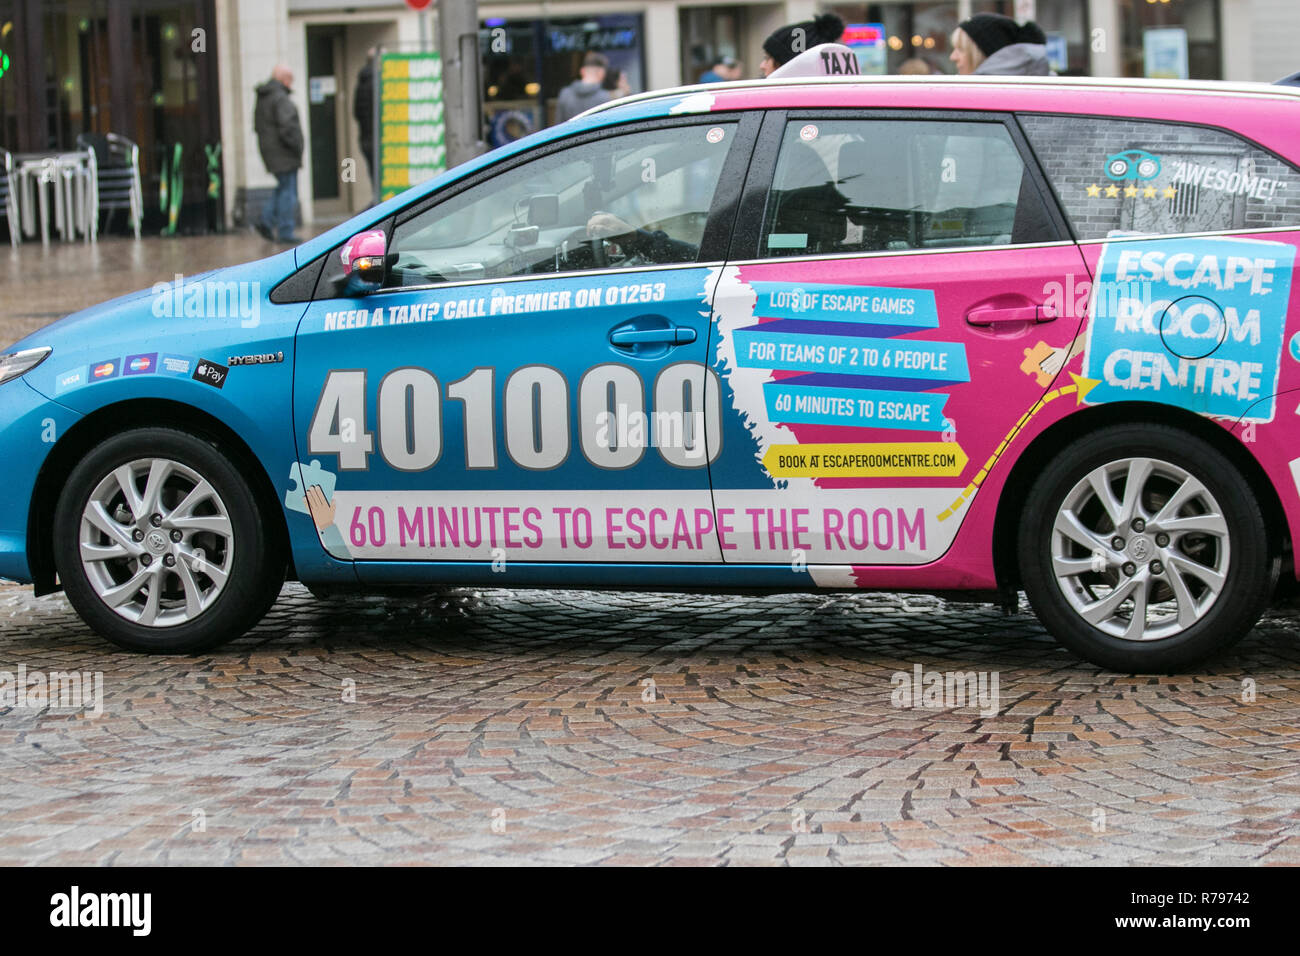 Taxi cab for hire in Blackpool, UK - Stock Image